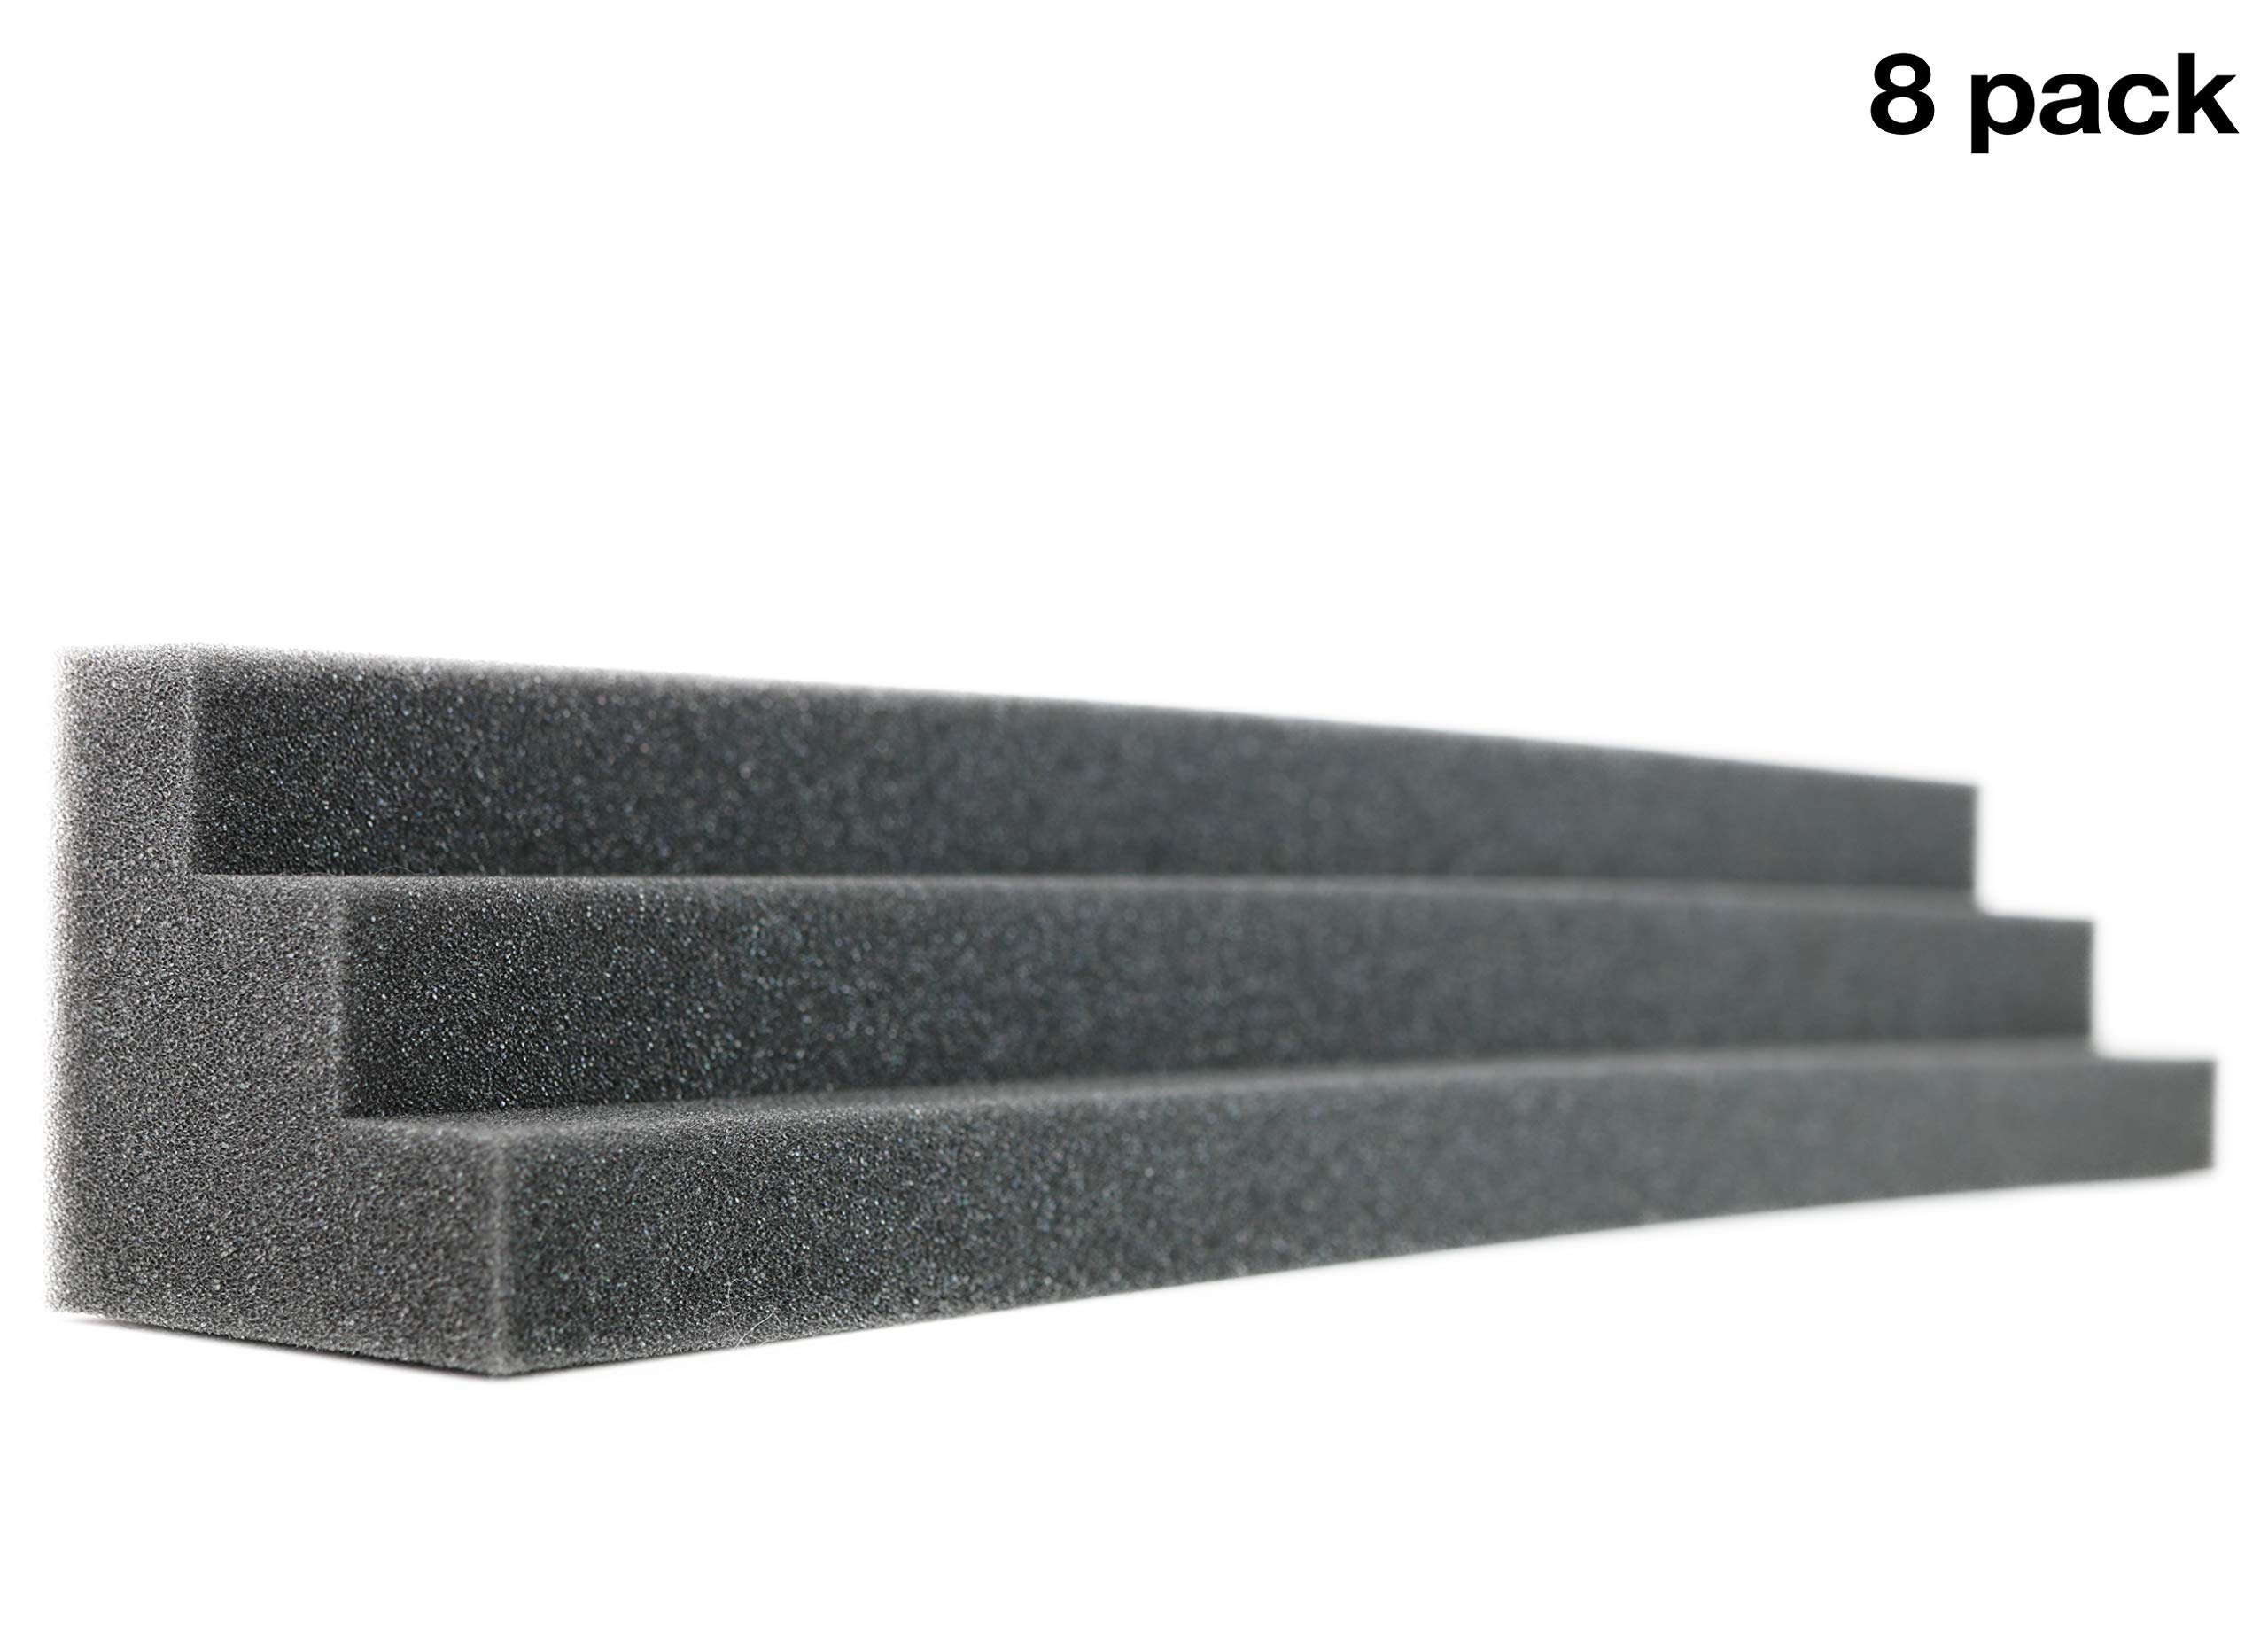 New Level Column Acoustic Wedge Studio Foam Corner Block Finish Corner Wall in Studios or Home Theater (8 Pack)